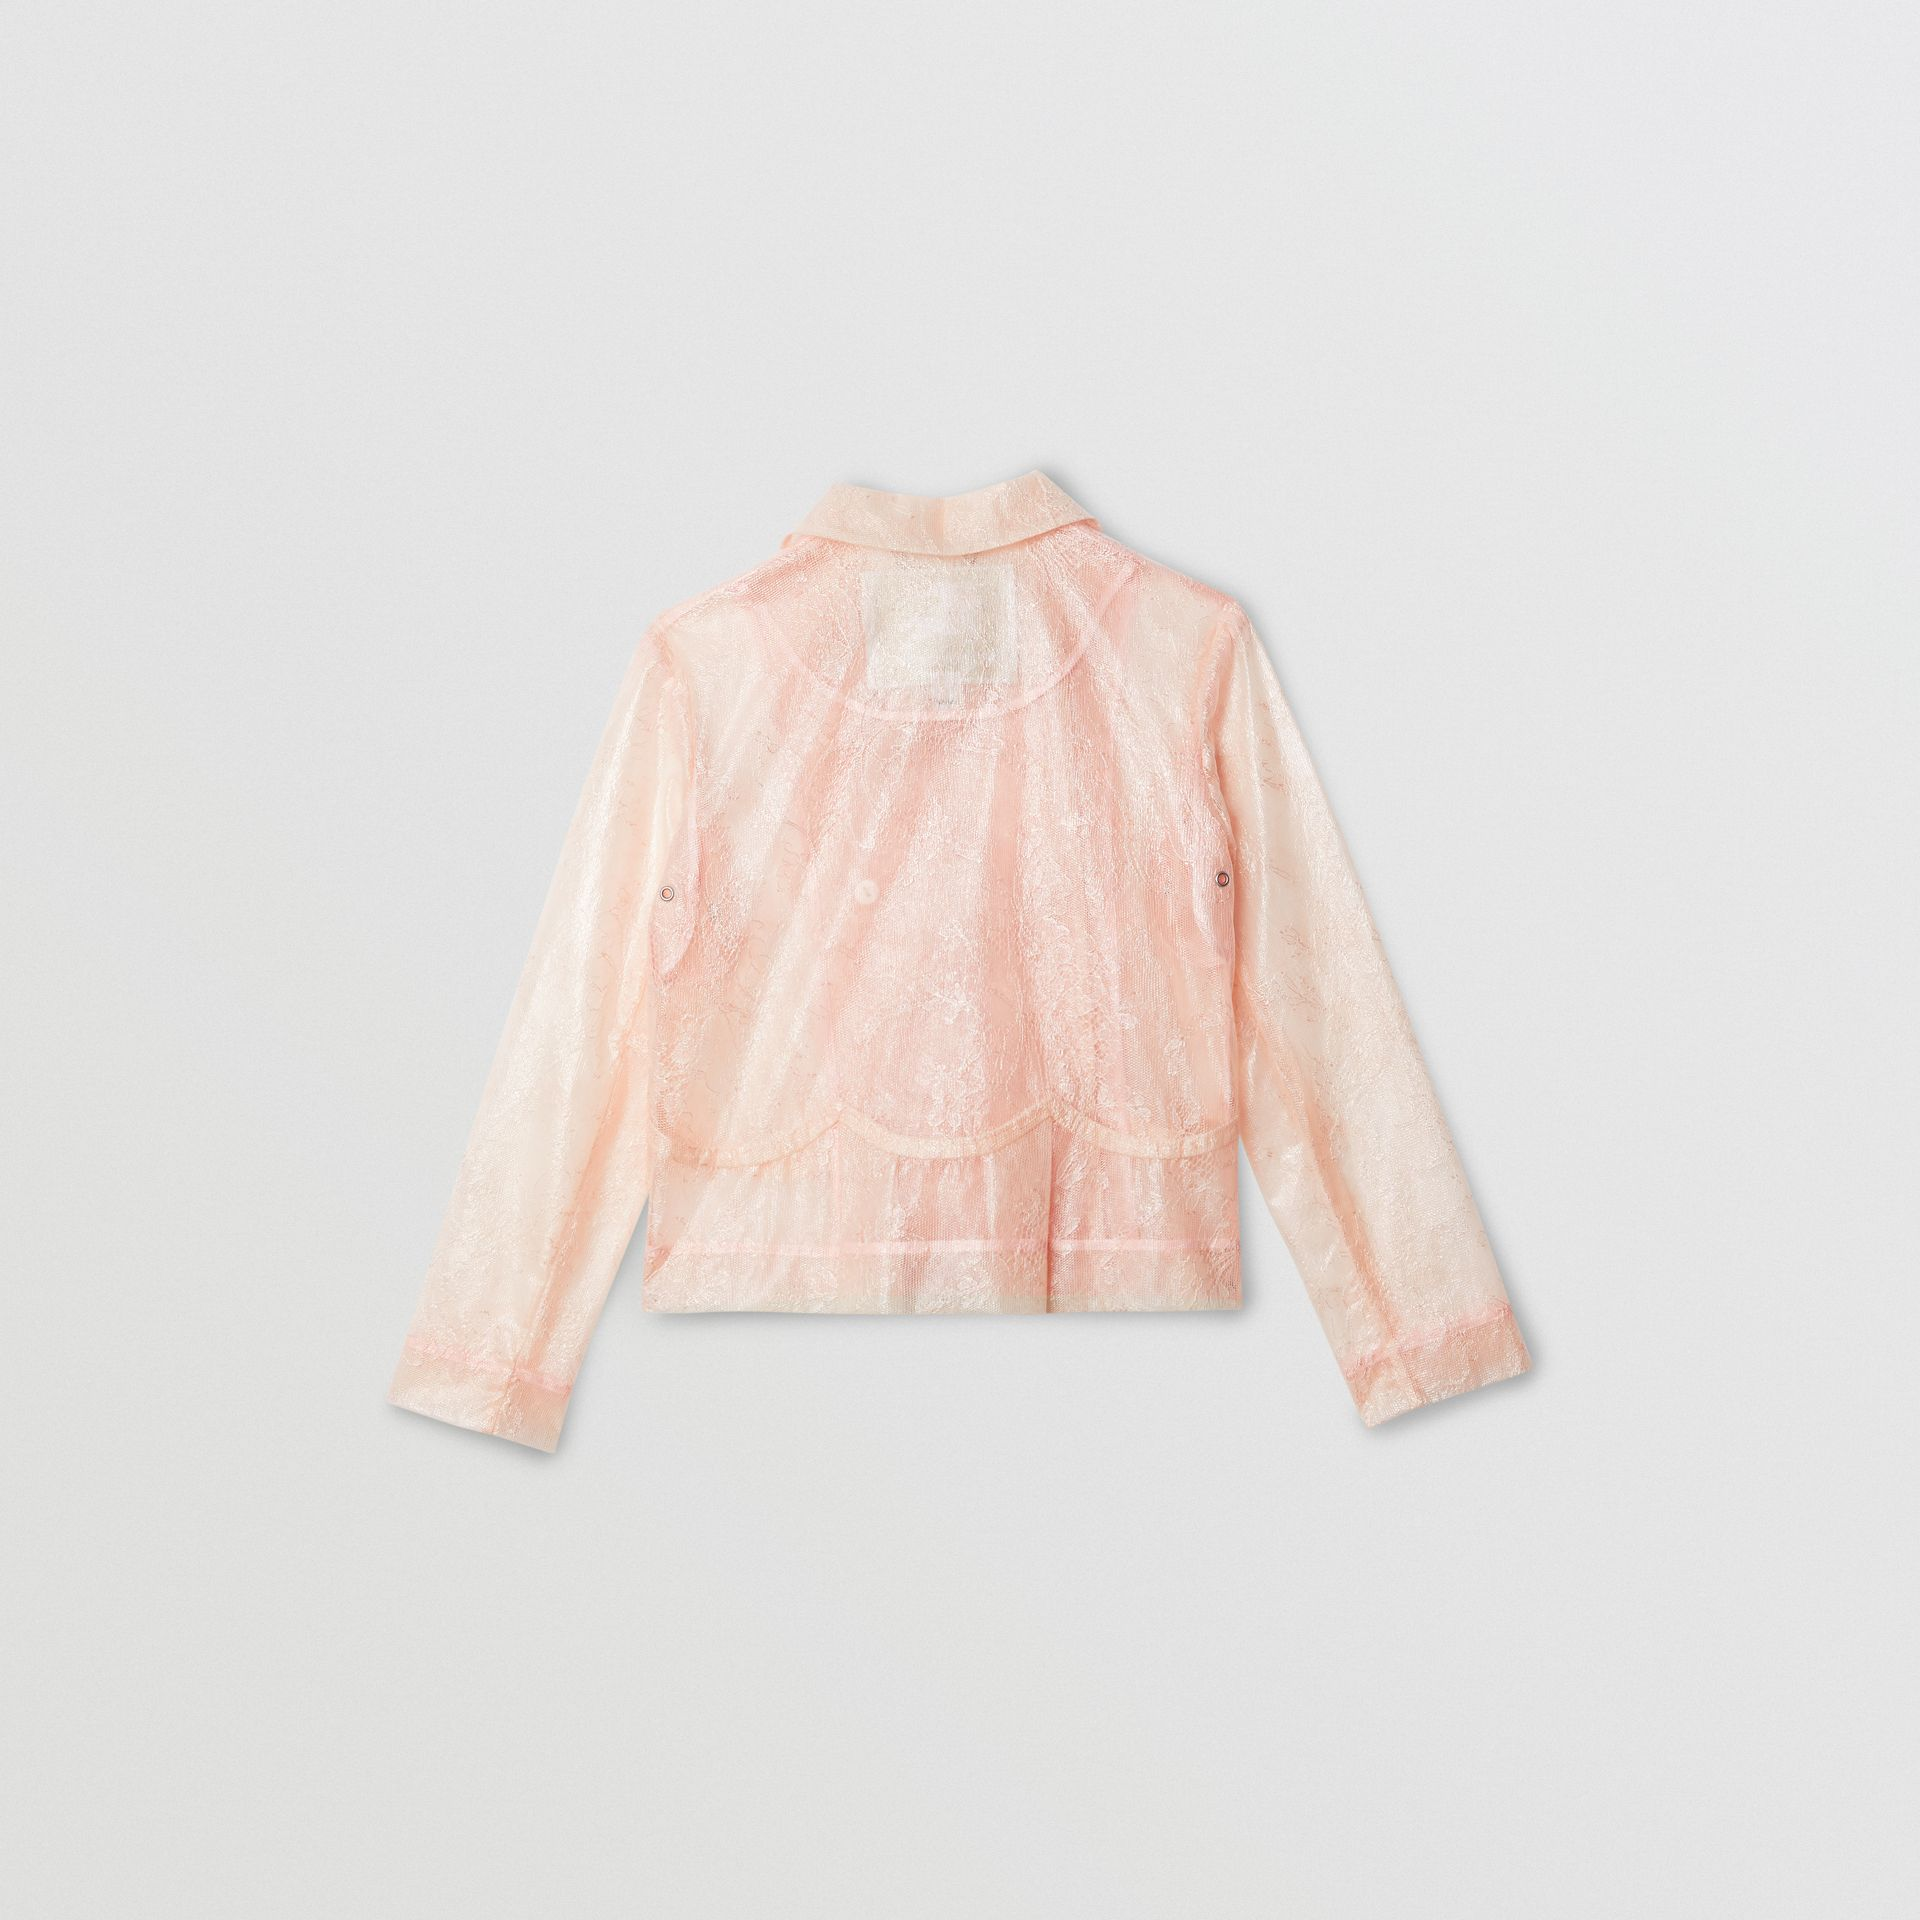 Laminated Lace Jacket in Pale Pink | Burberry - gallery image 3